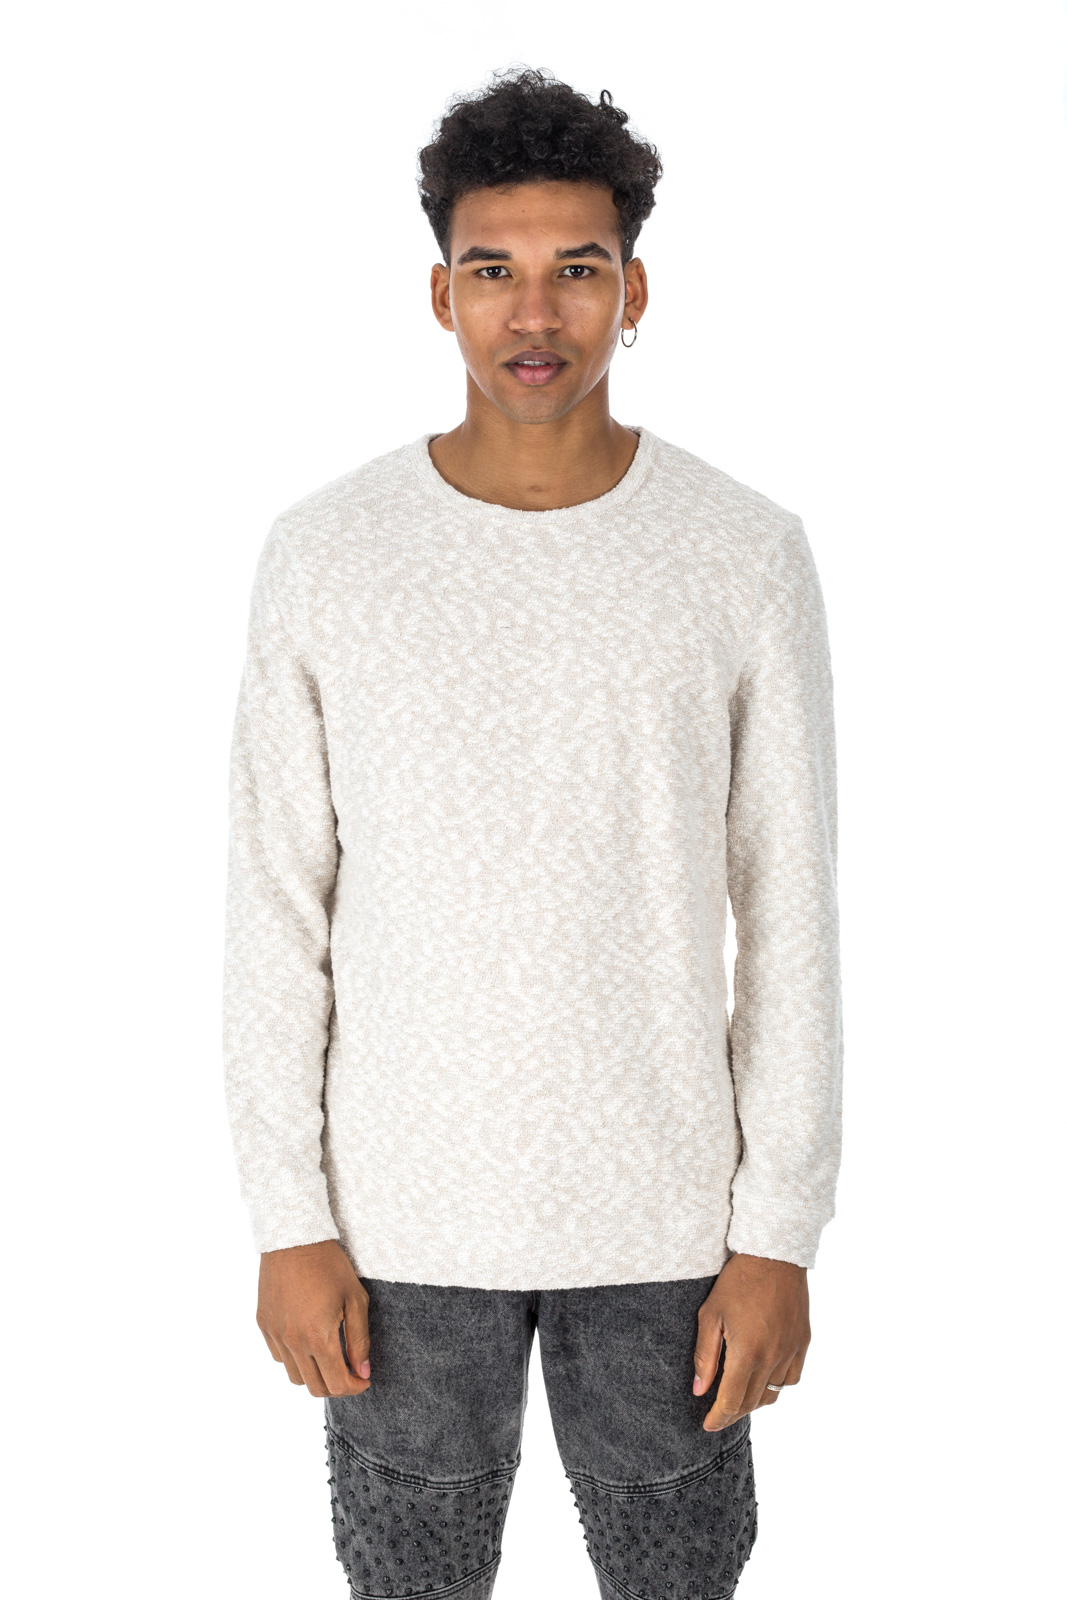 Minimum - White Noshiro Sweater